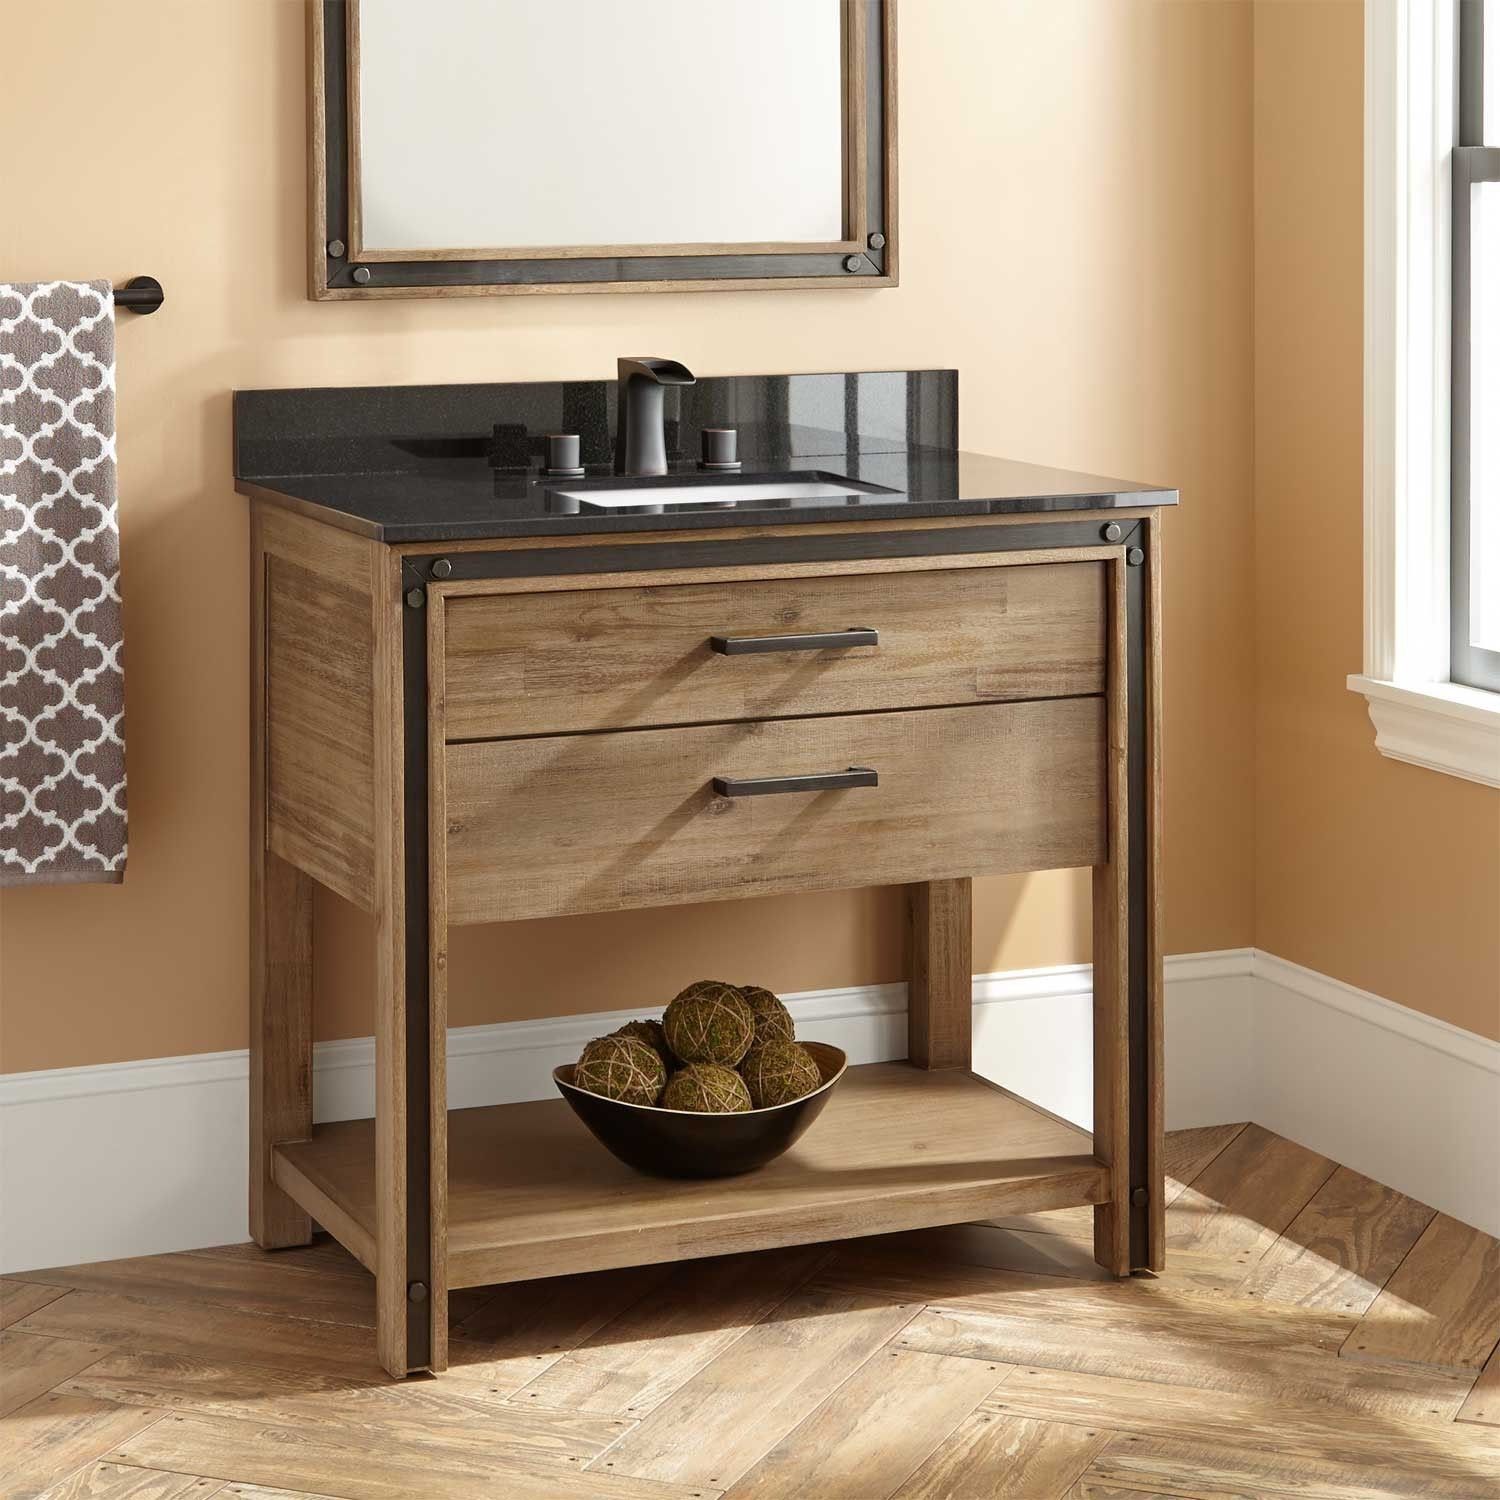 36 Celebration Vanity For Rectangular Undermount Sink Rustic